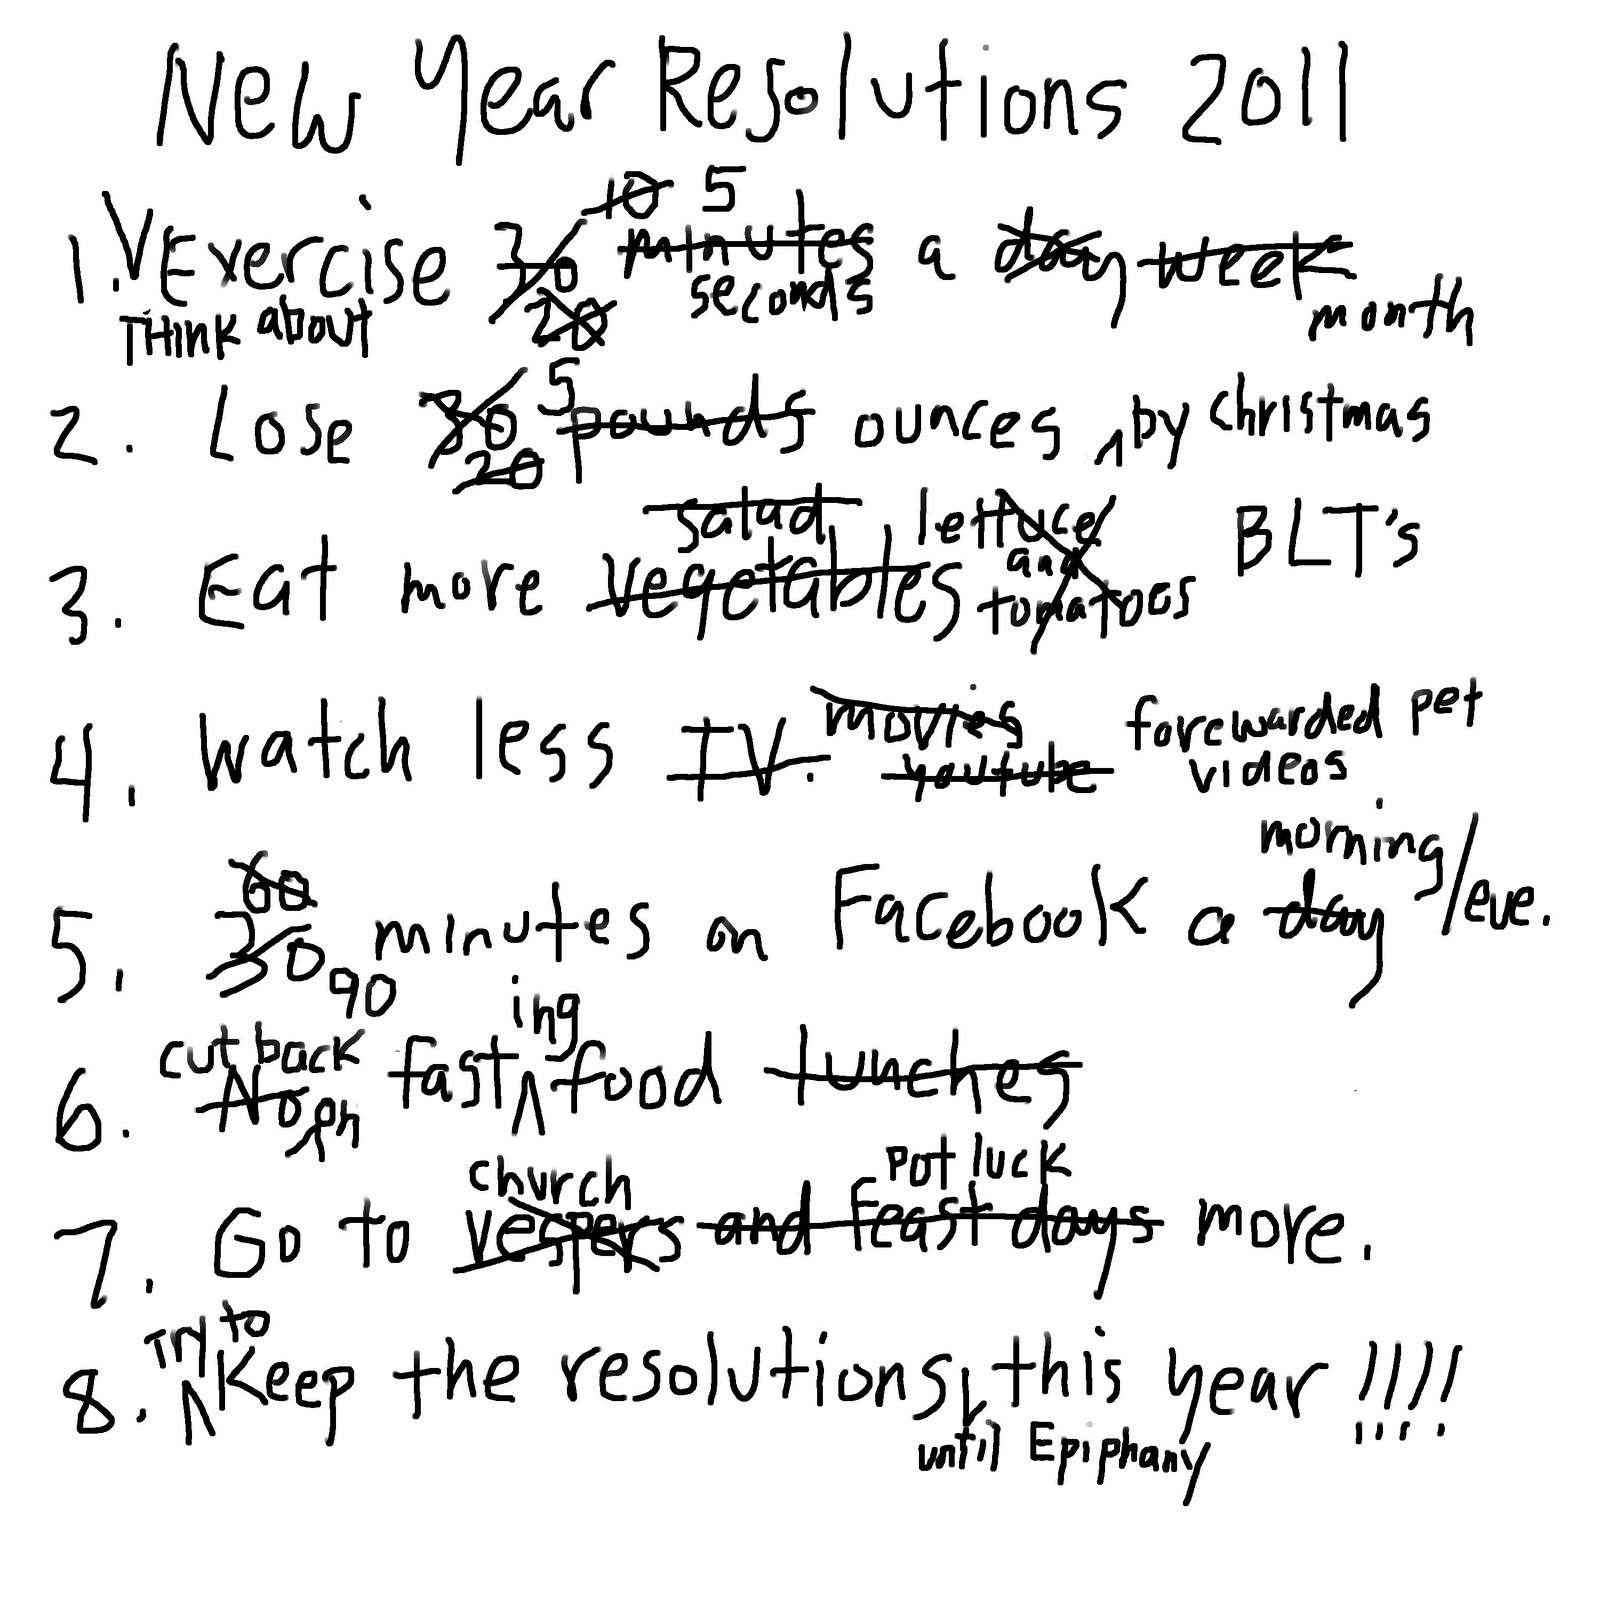 38 best New Year Resolutions images on Pinterest | Funny new year ...